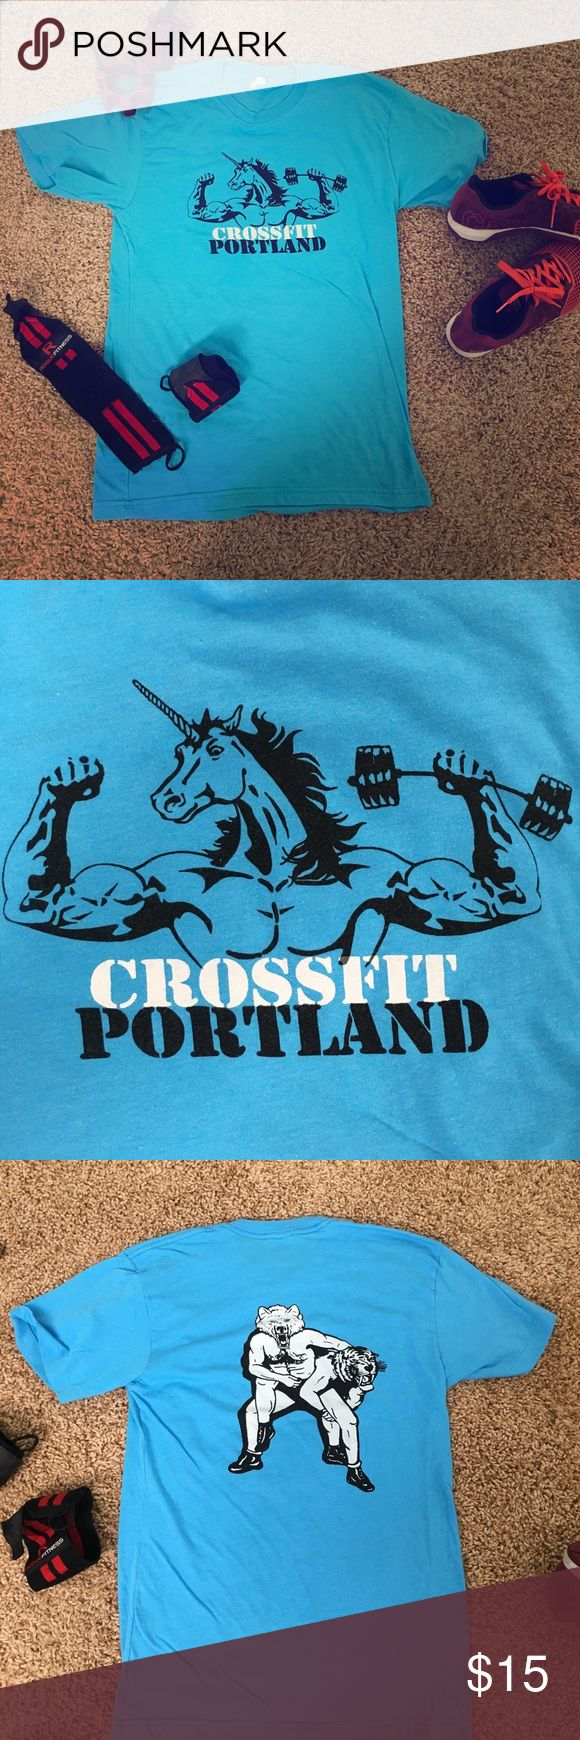 CrossFit Portland t-shirt. CrossFit Portland t-shirt. Men's size medium but fits smaller, great as a ladies medium! Smoke-free home. Super soft, great clean condition. *check out my other CF shirts! Bundle and save! American Apparel Tops Tees - Short Sleeve